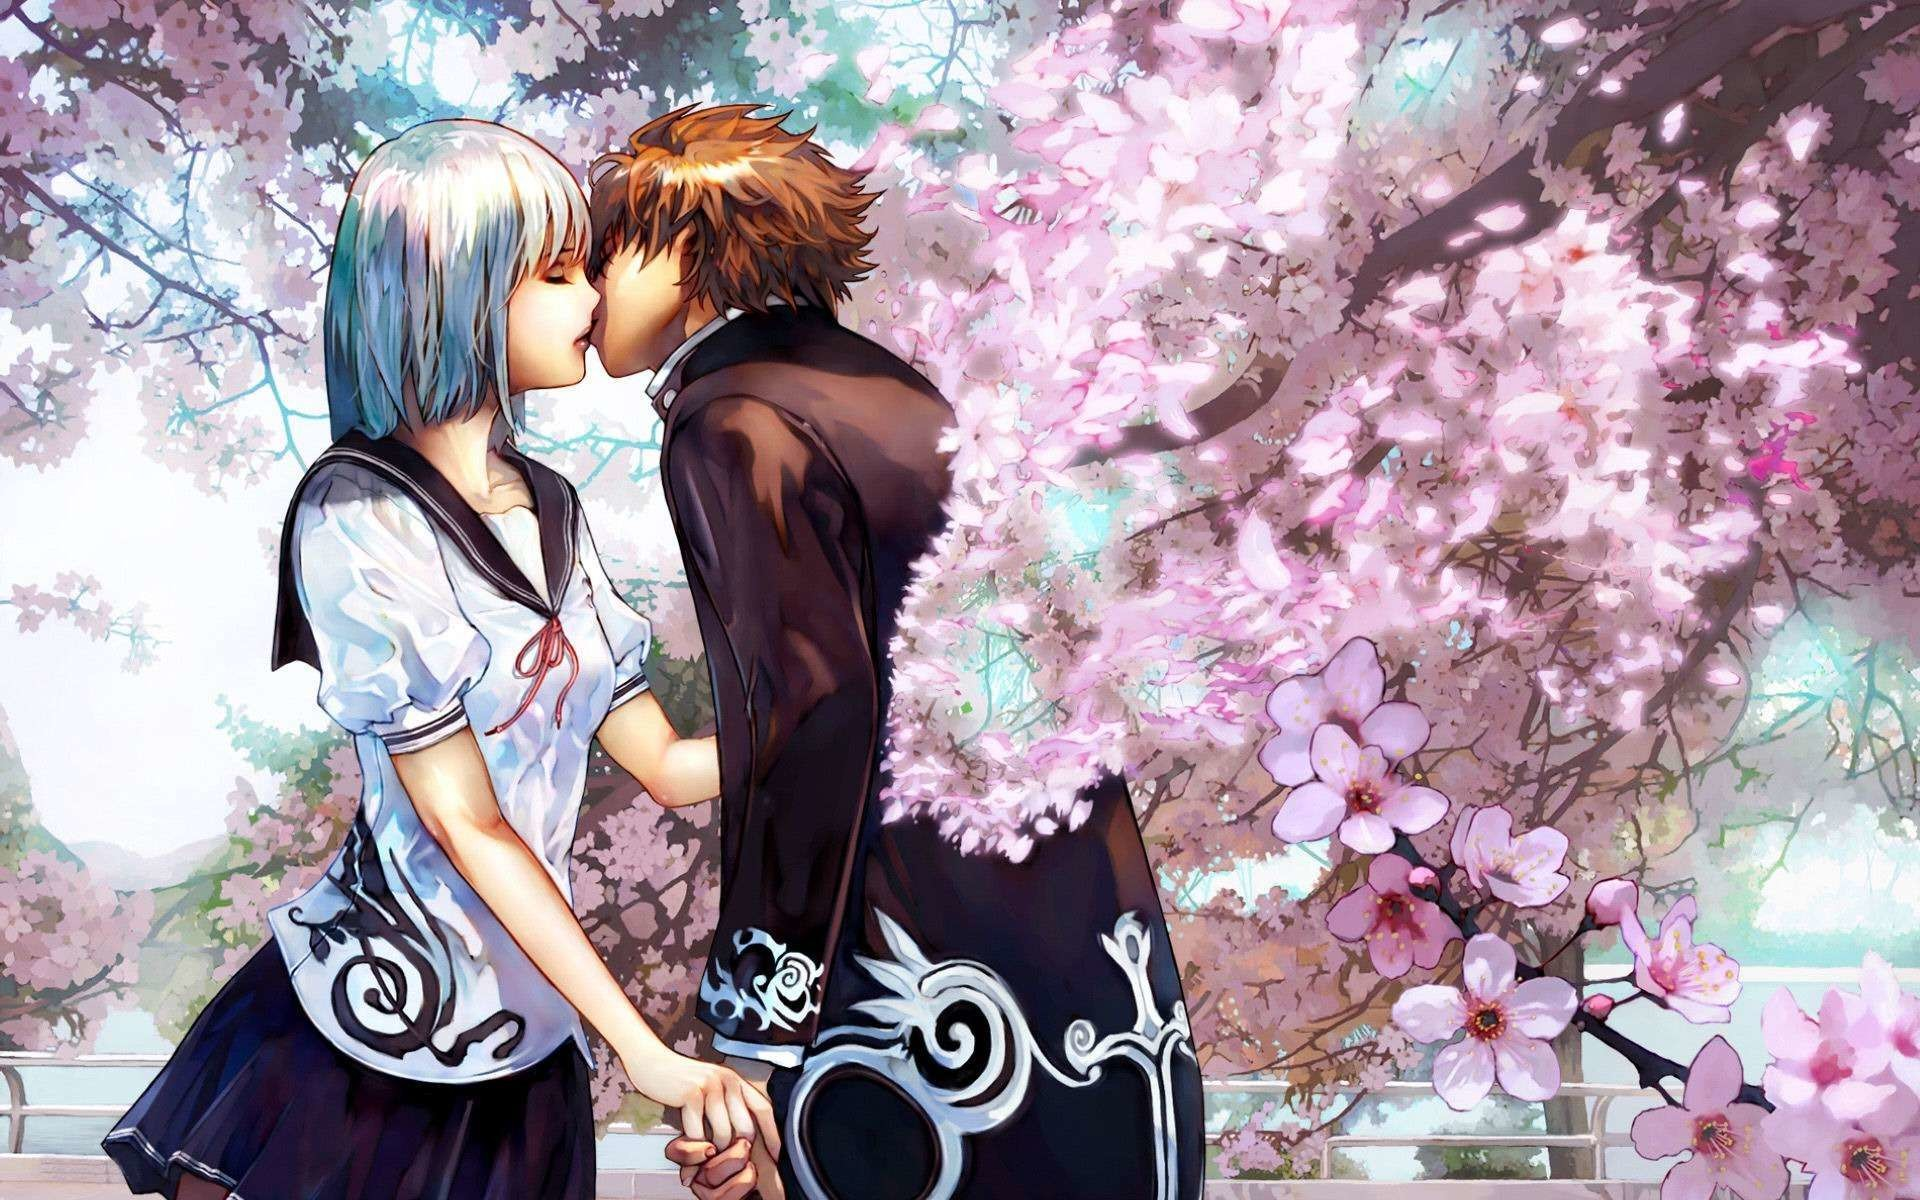 1920x1200 Anime Couple Wallpaper, 37 Desktop Images of Anime Couple | Anime .